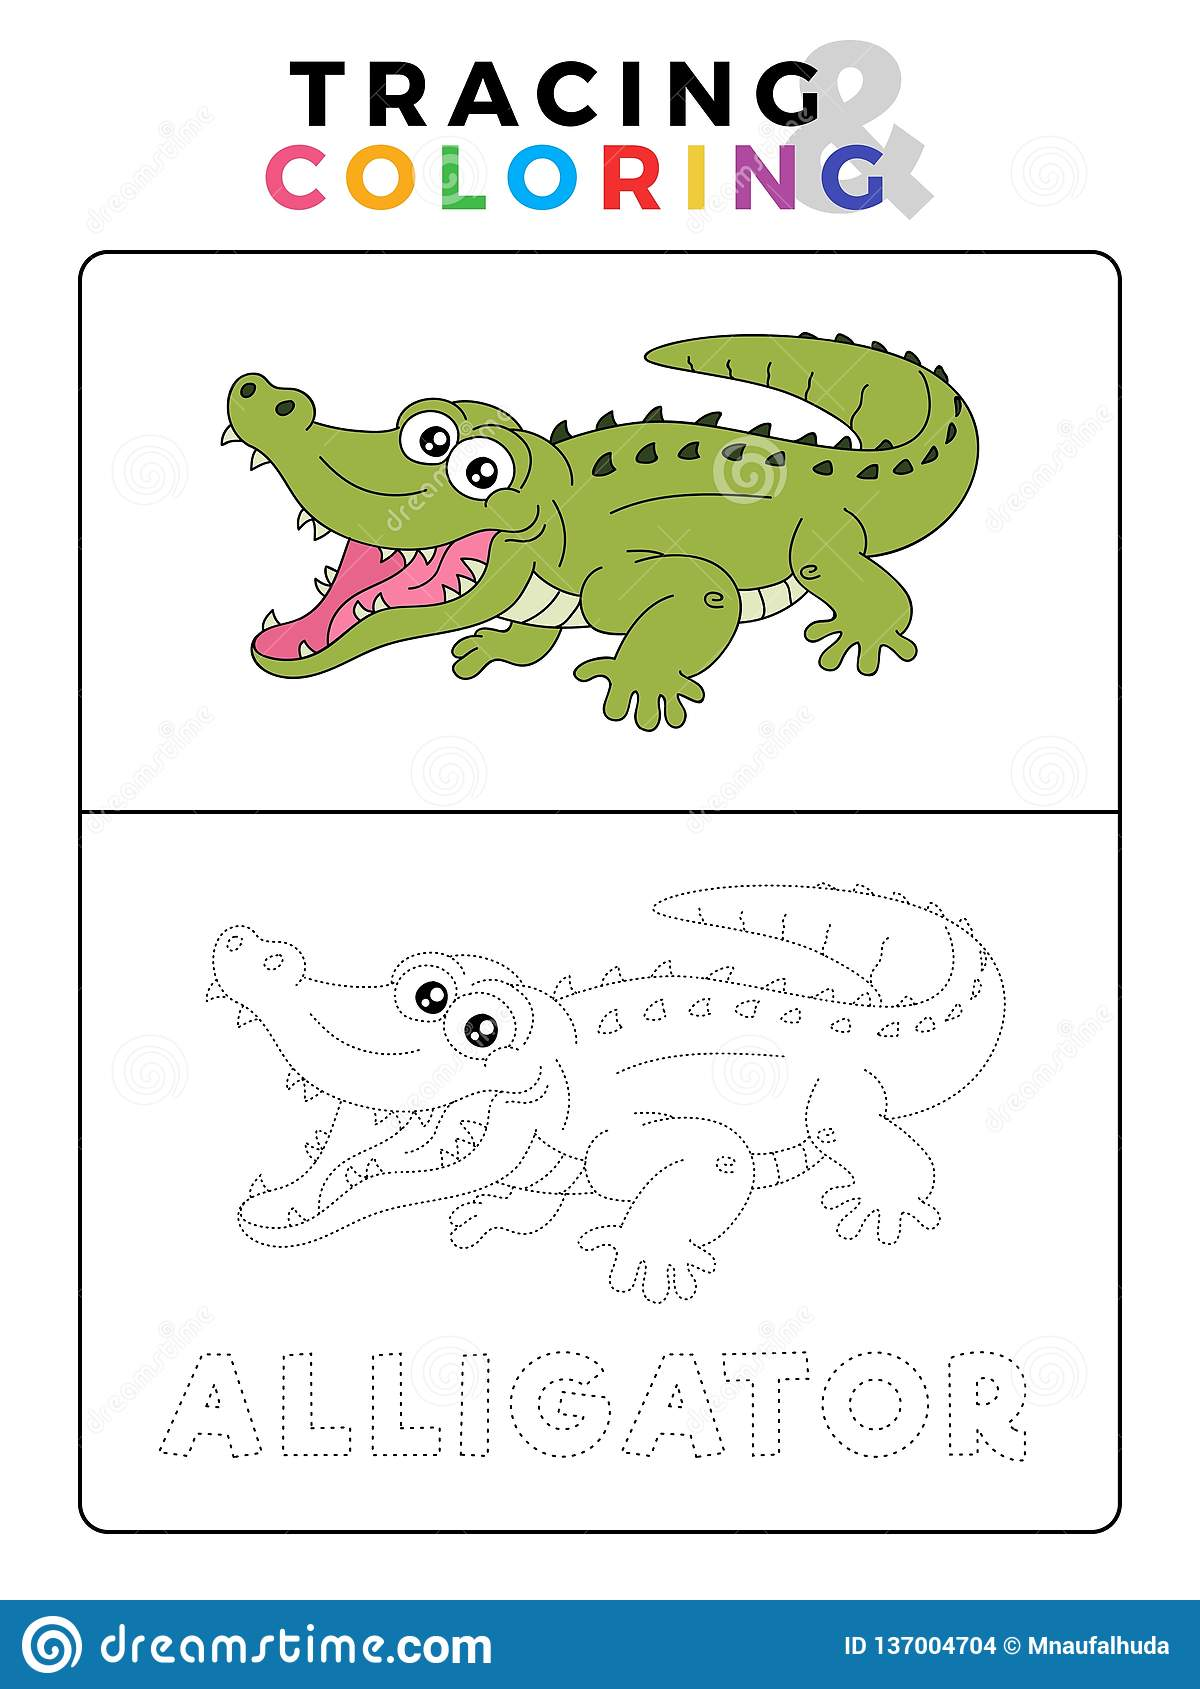 Funny Alligator Crocodile Animal Tracing And Coloring Book